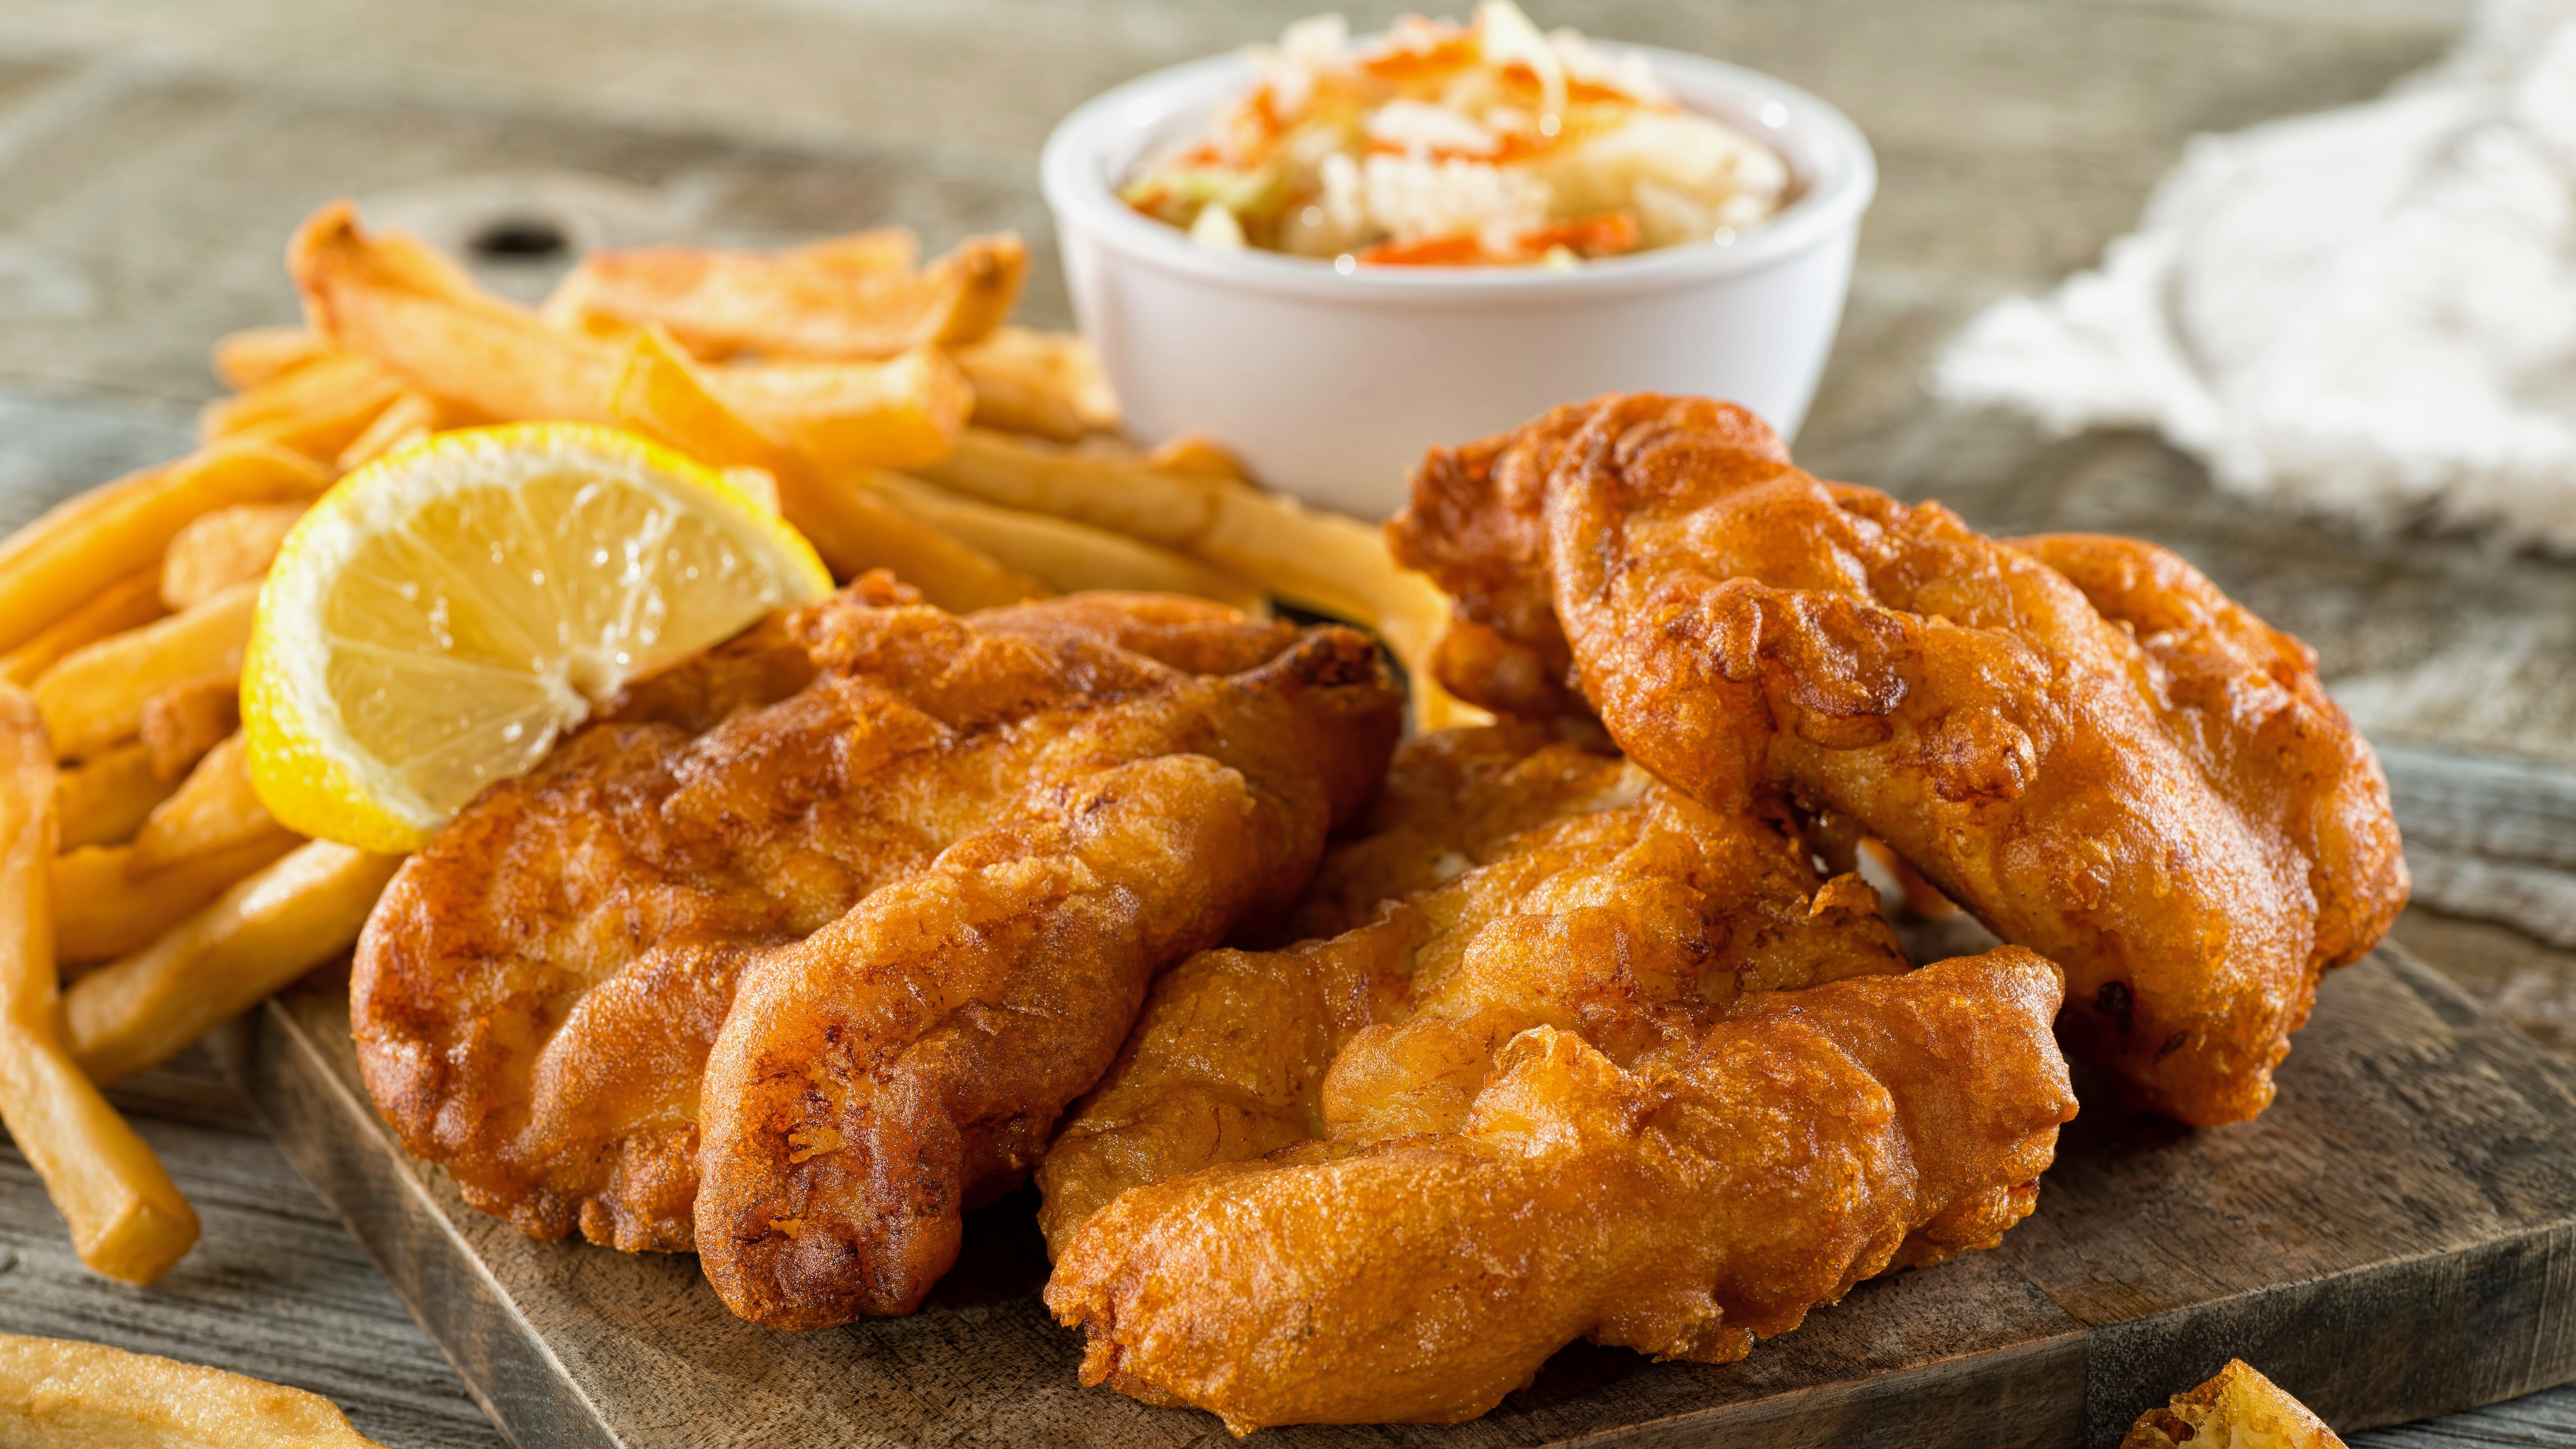 Fried food linked to increased mortality